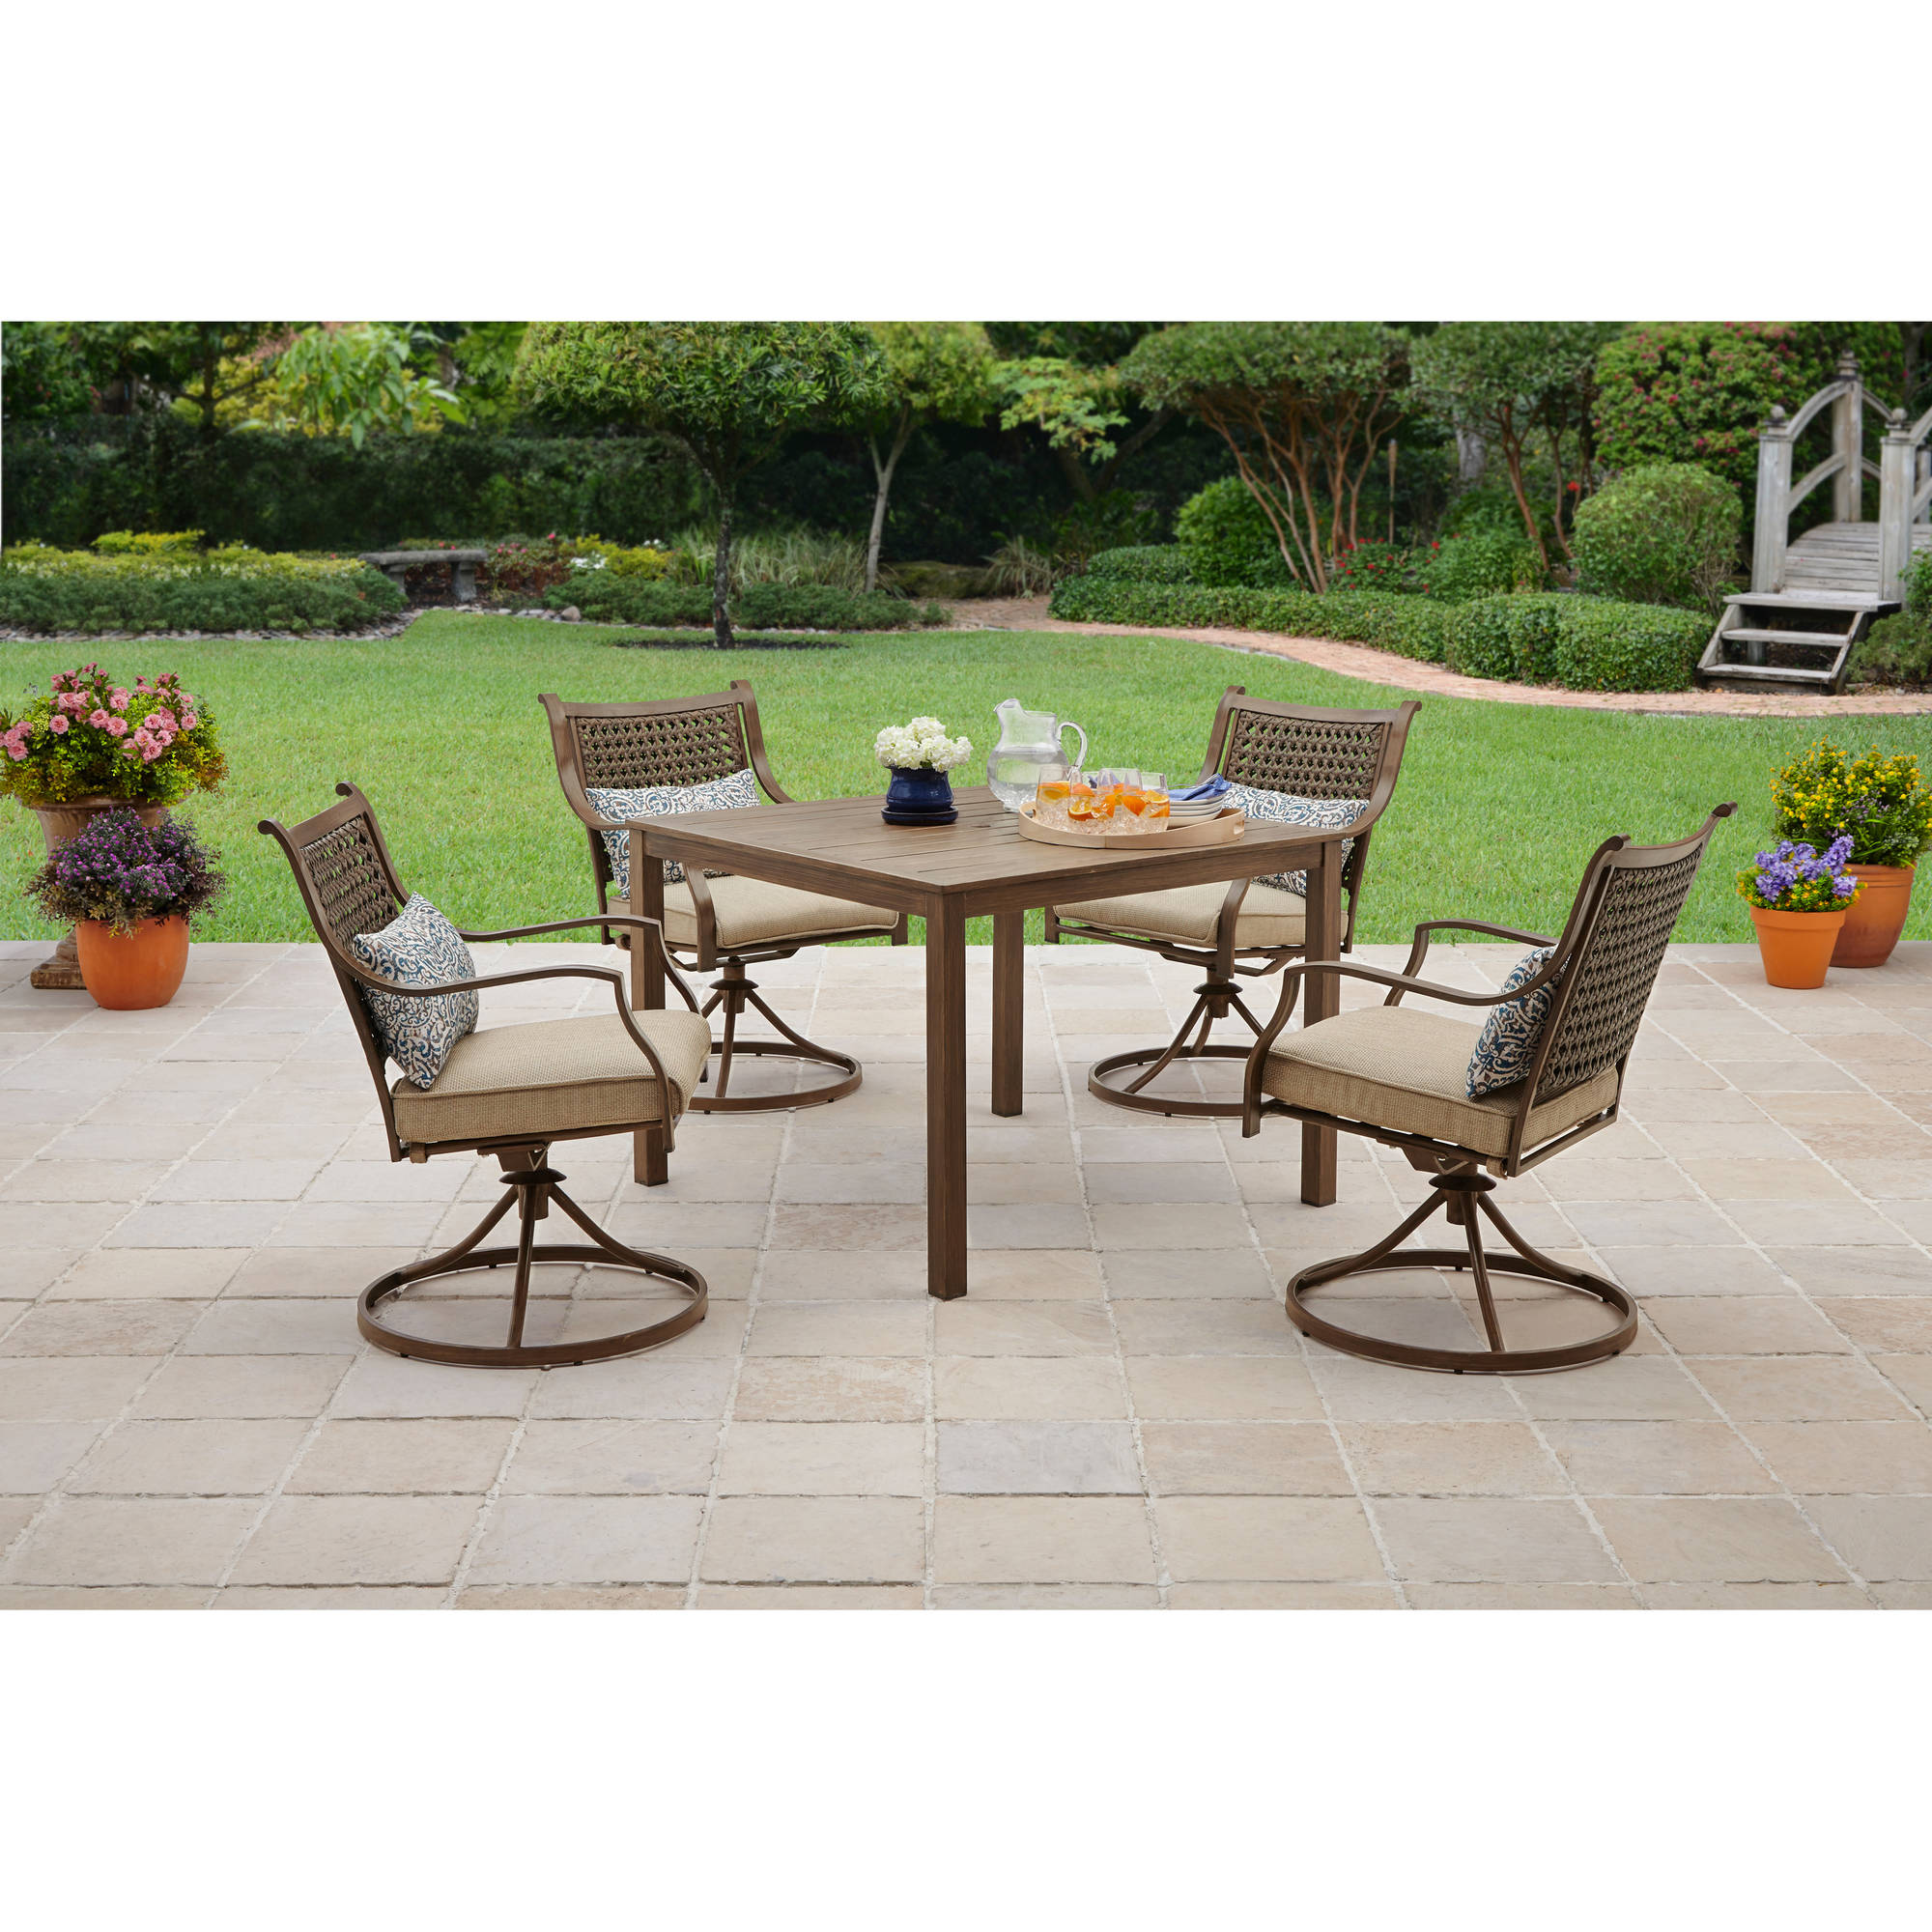 Better homes and gardens lynnhaven park 5 piece patio for Jardin 8 piece dining set